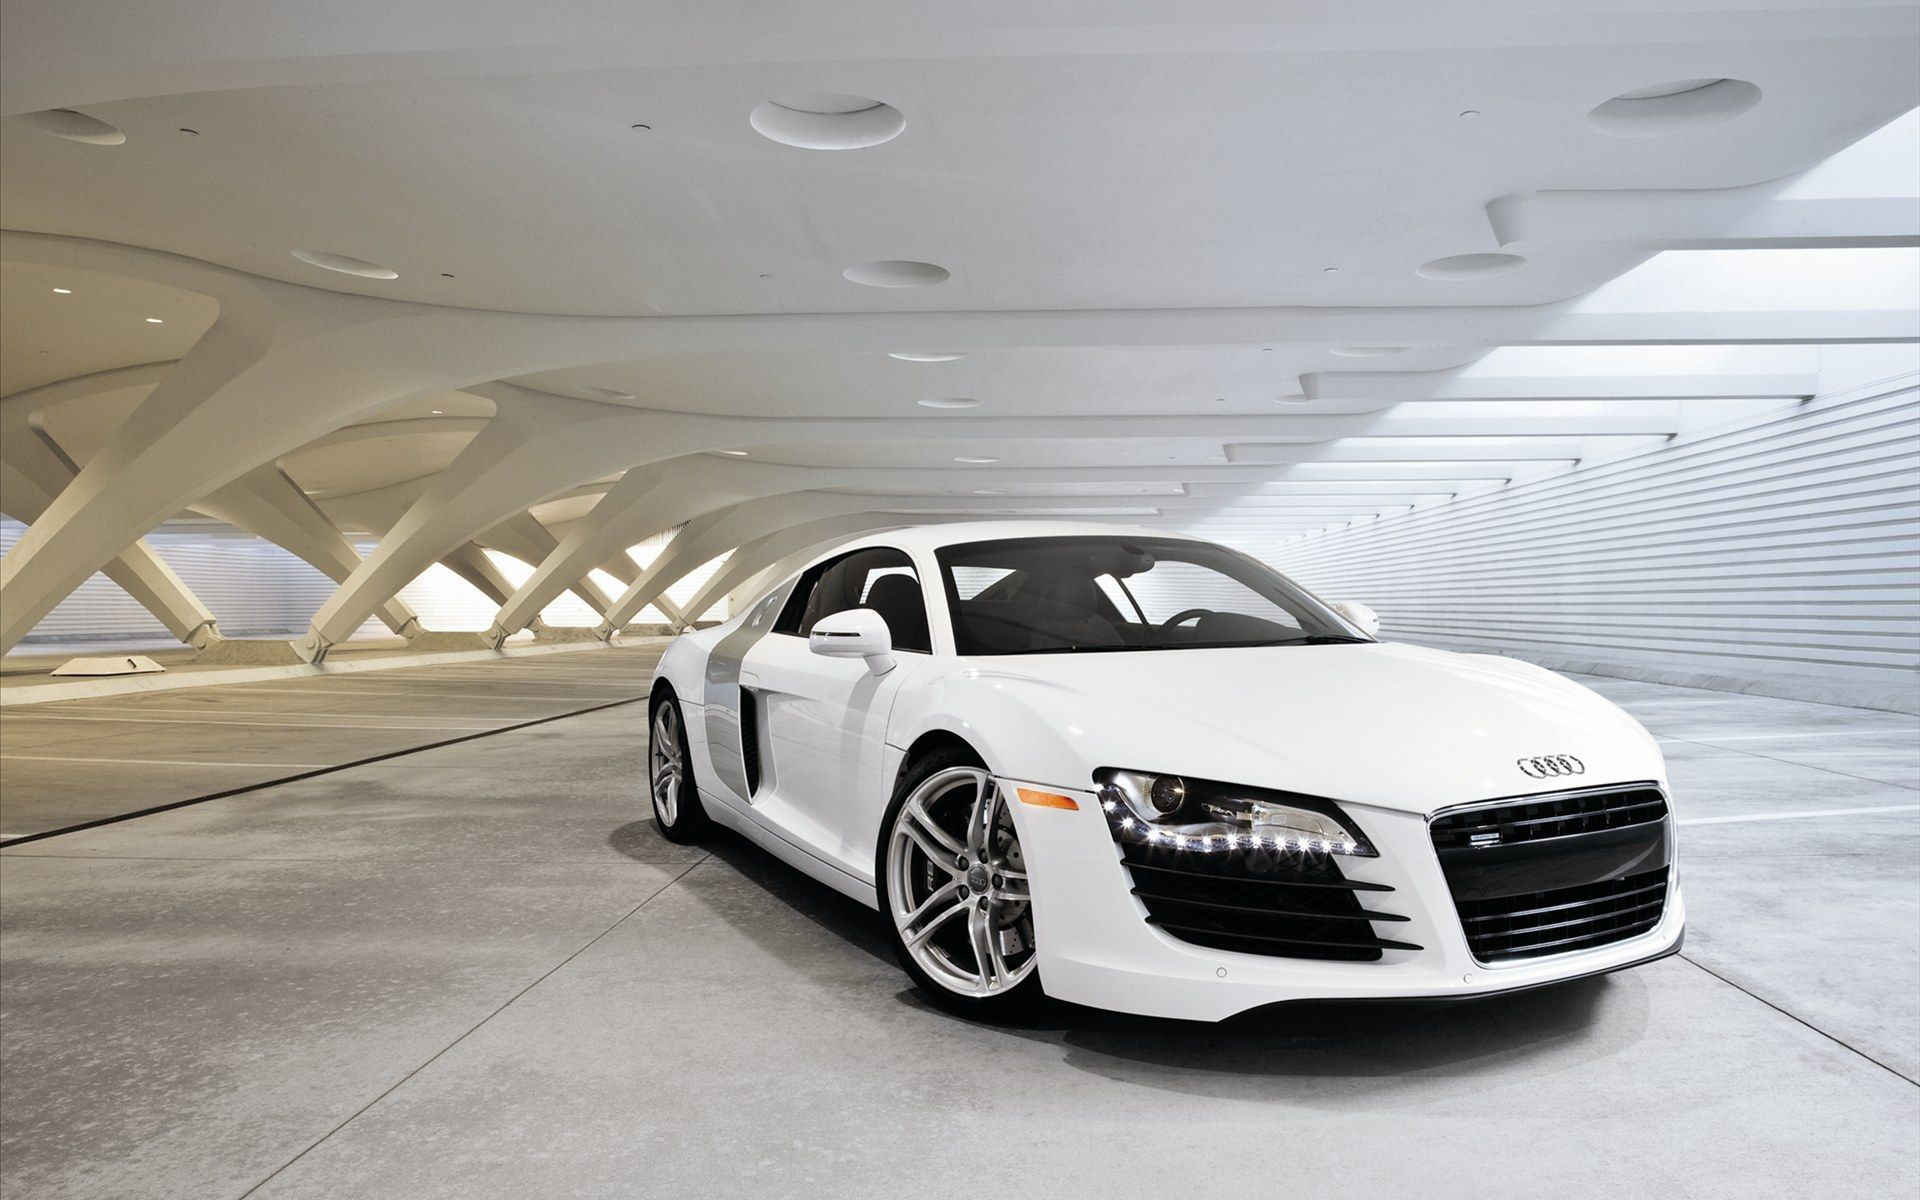 Audi Car Wallpapers Hd Android Apps On Google Play 1920x1200